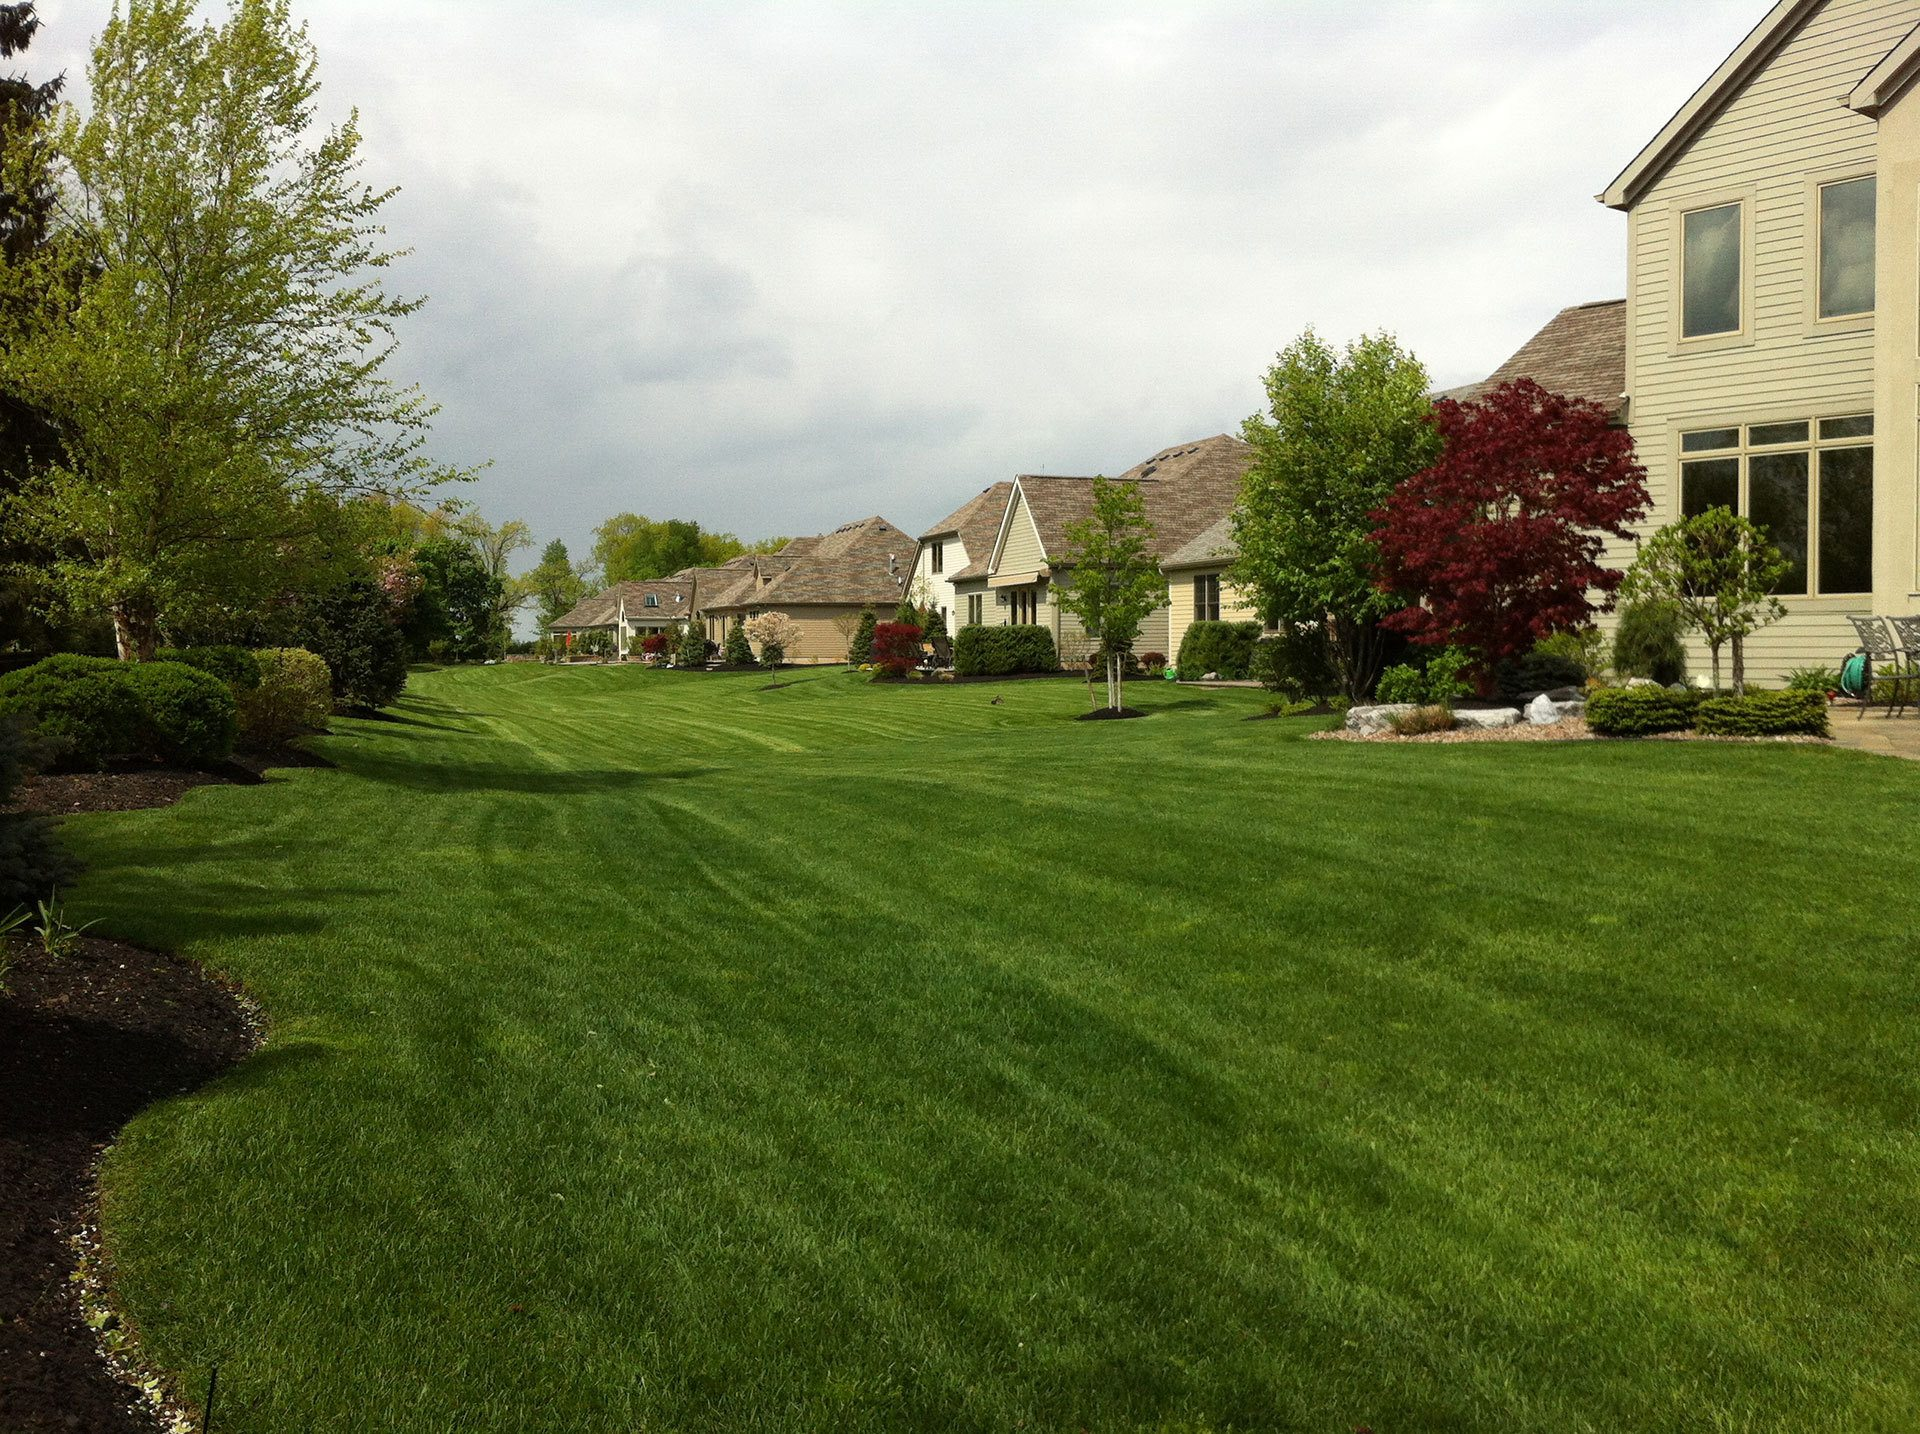 House with a well maintained lawn